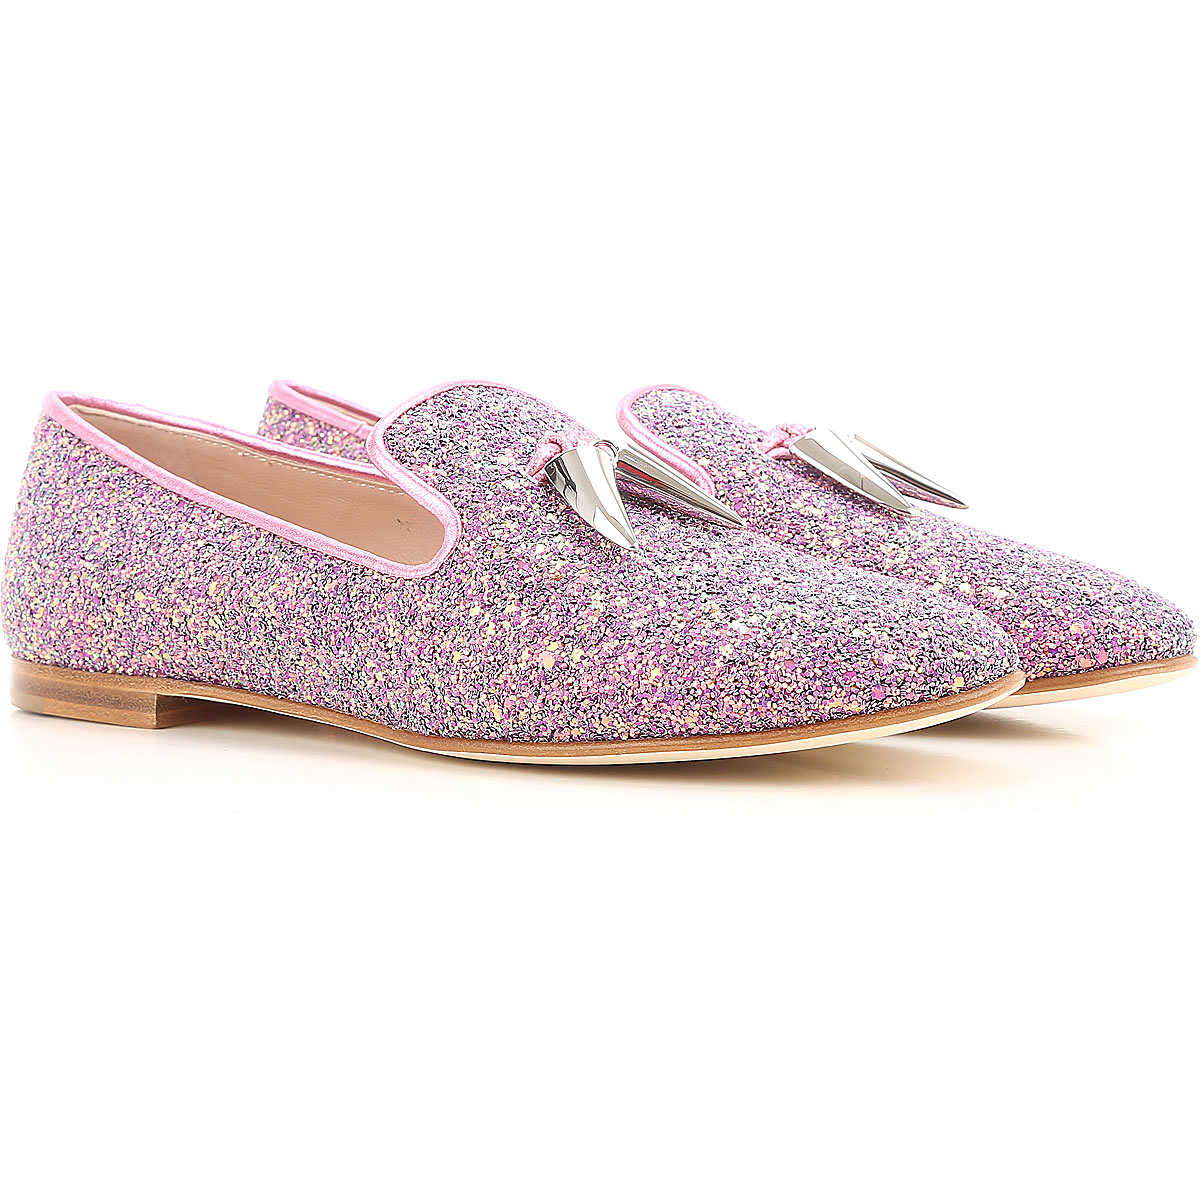 Giuseppe Zanotti Design Loafers for Women On Sale in Outlet Glitter Pink - GOOFASH